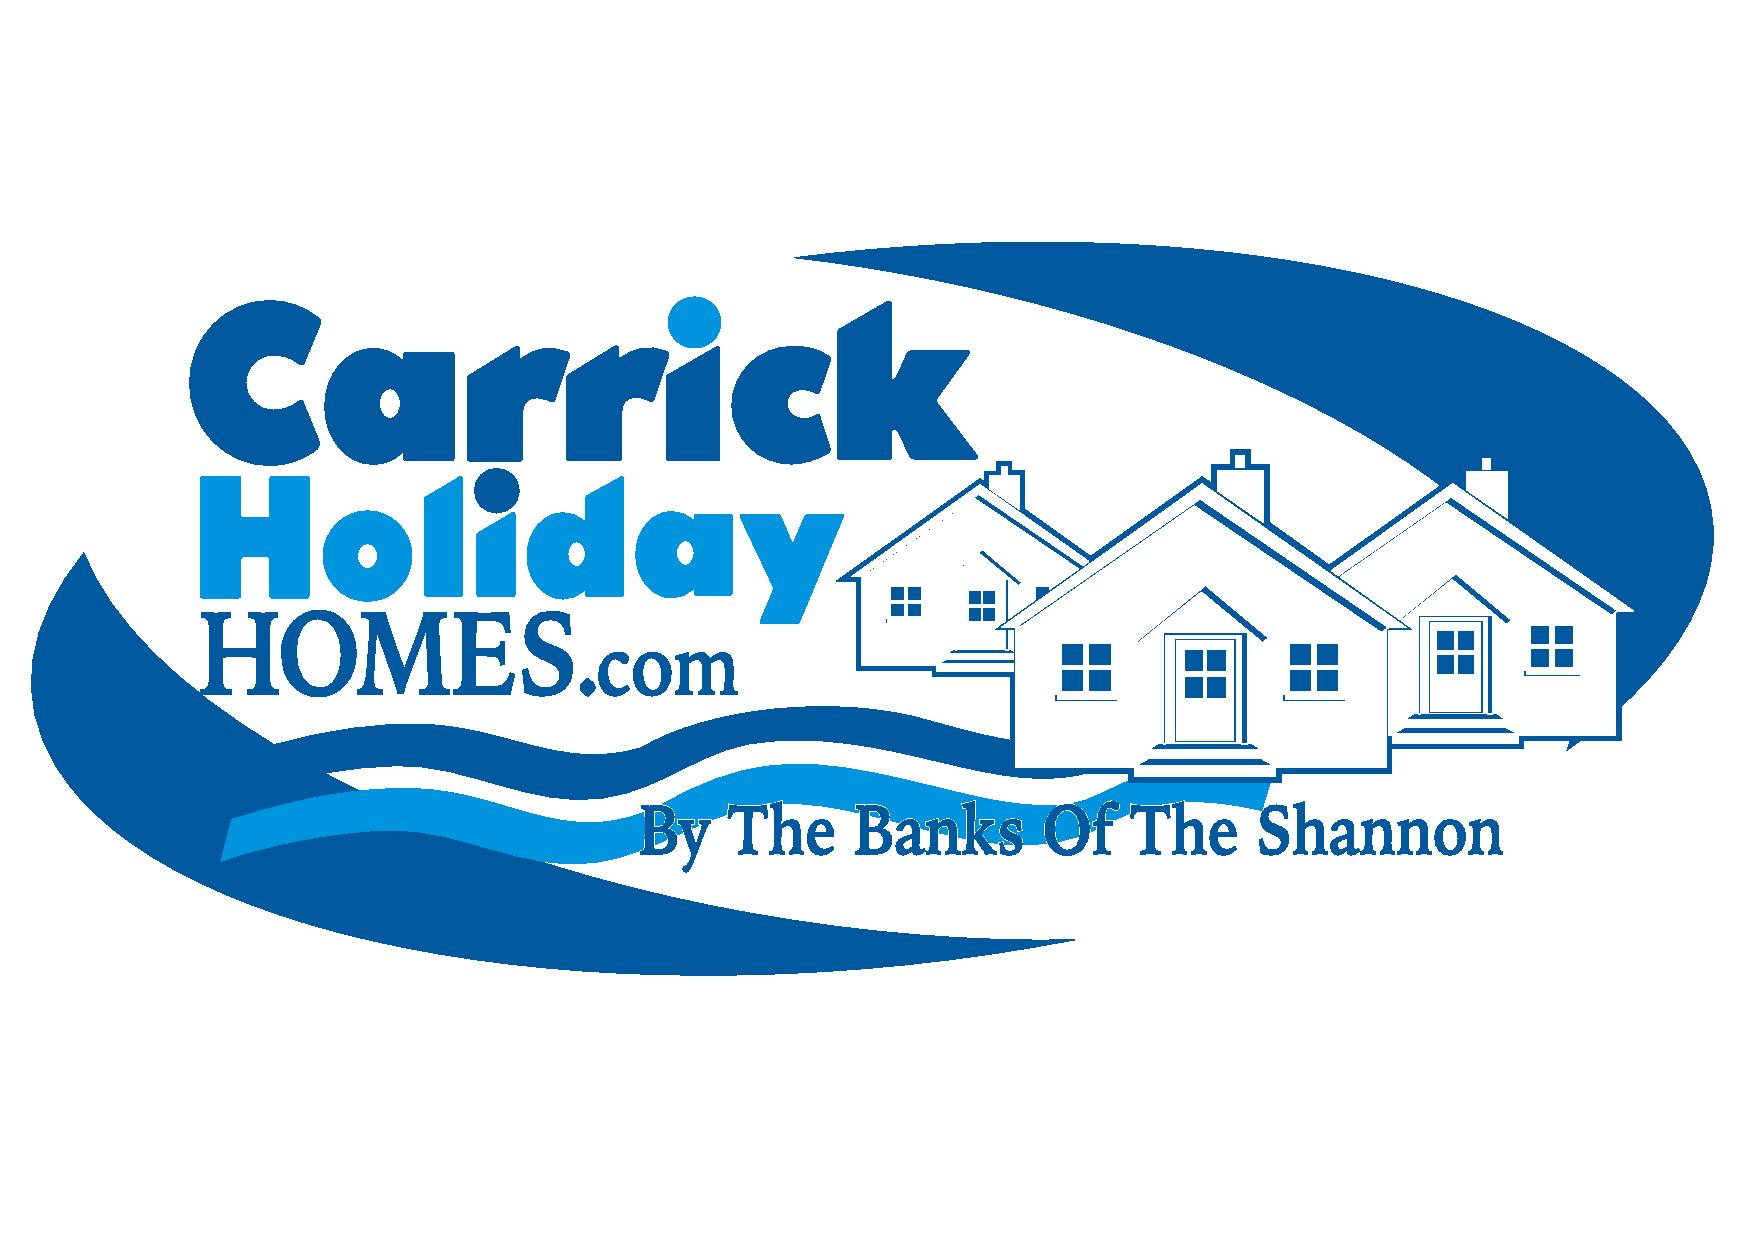 Carrick Holiday Homes